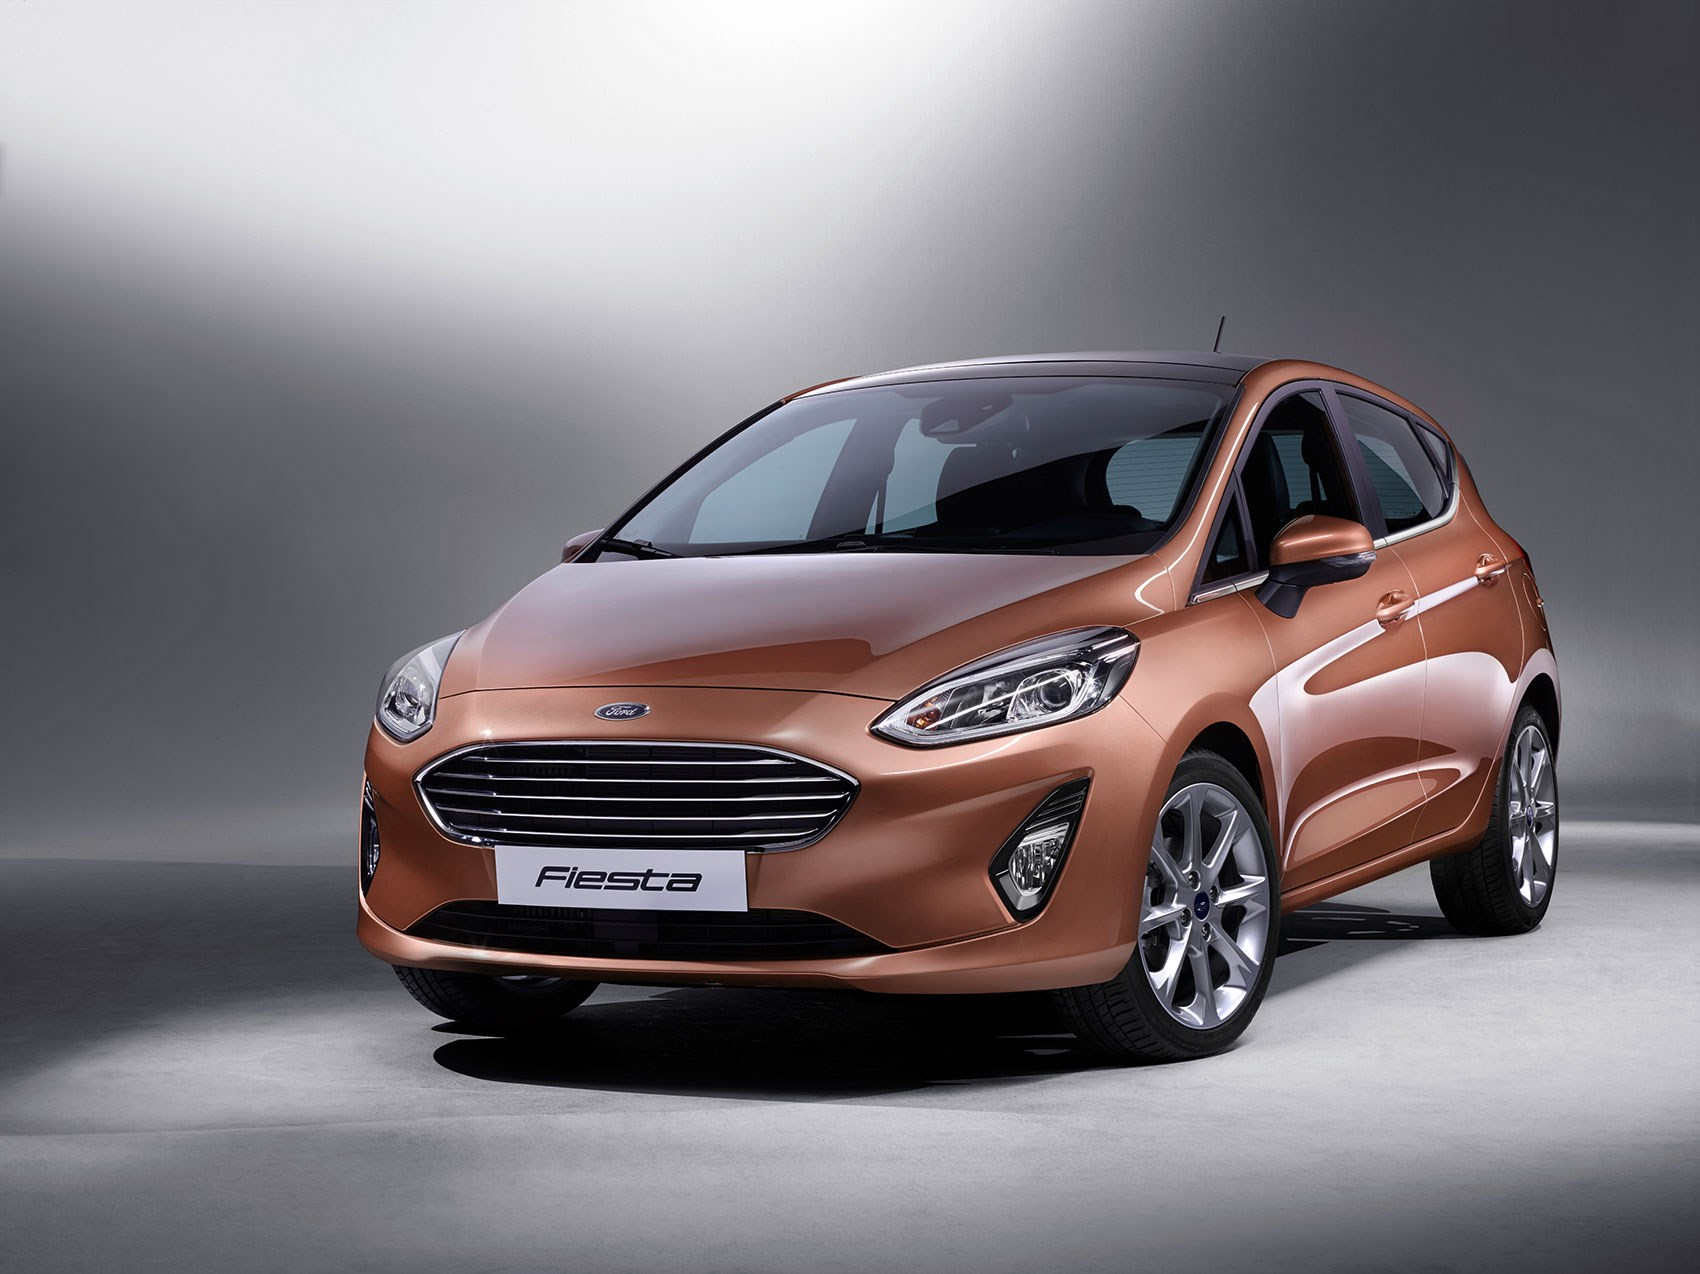 ... Ford Fiesta more of the same only more modern ... & The hottest new cars of 2017 revealed by CAR Magazine markmcfarlin.com